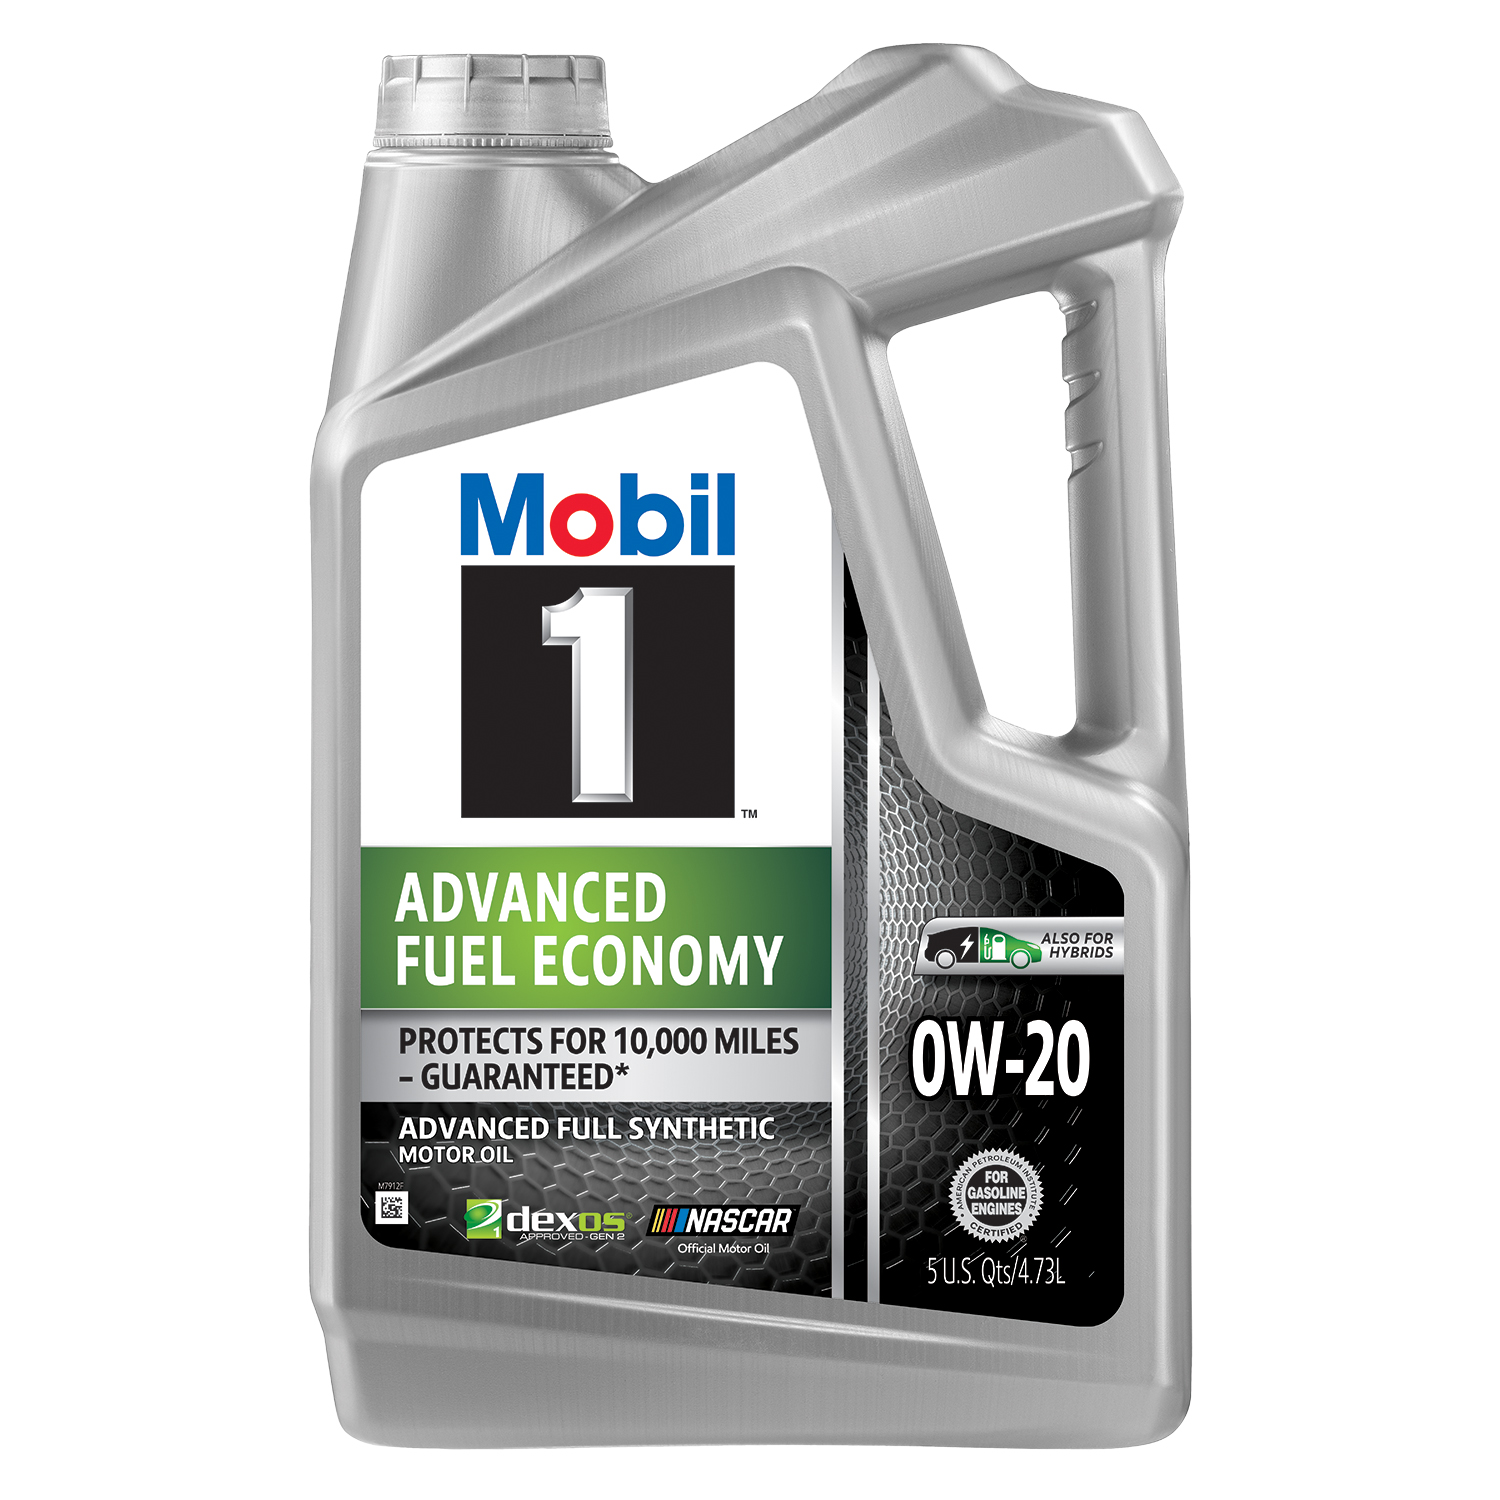 Mobil 1 Advanced Fuel Economy Full Synthetic Motor Oil 0W-20, 5